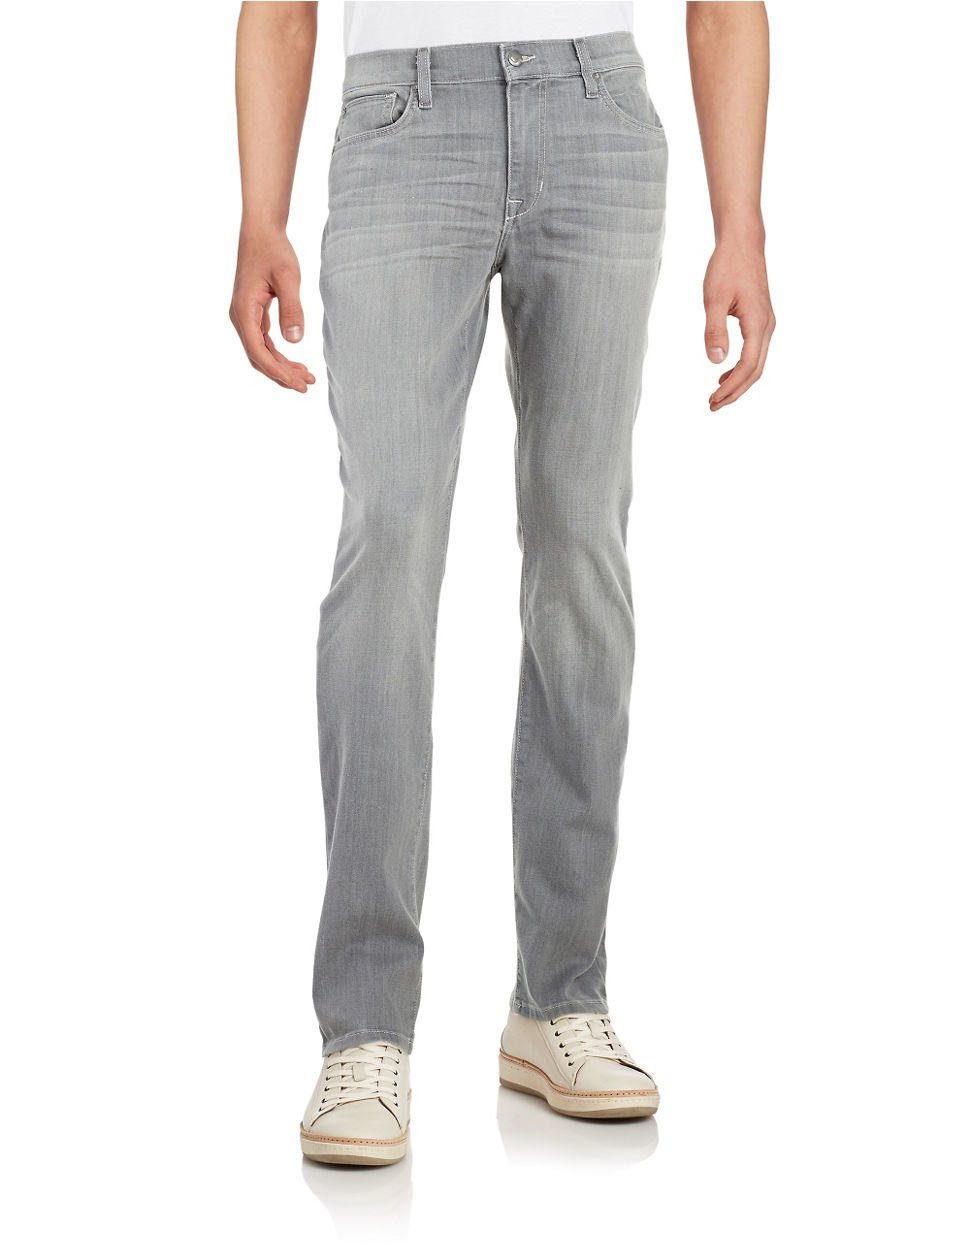 lyst joe 39 s jeans straight fit jeans in gray for men. Black Bedroom Furniture Sets. Home Design Ideas